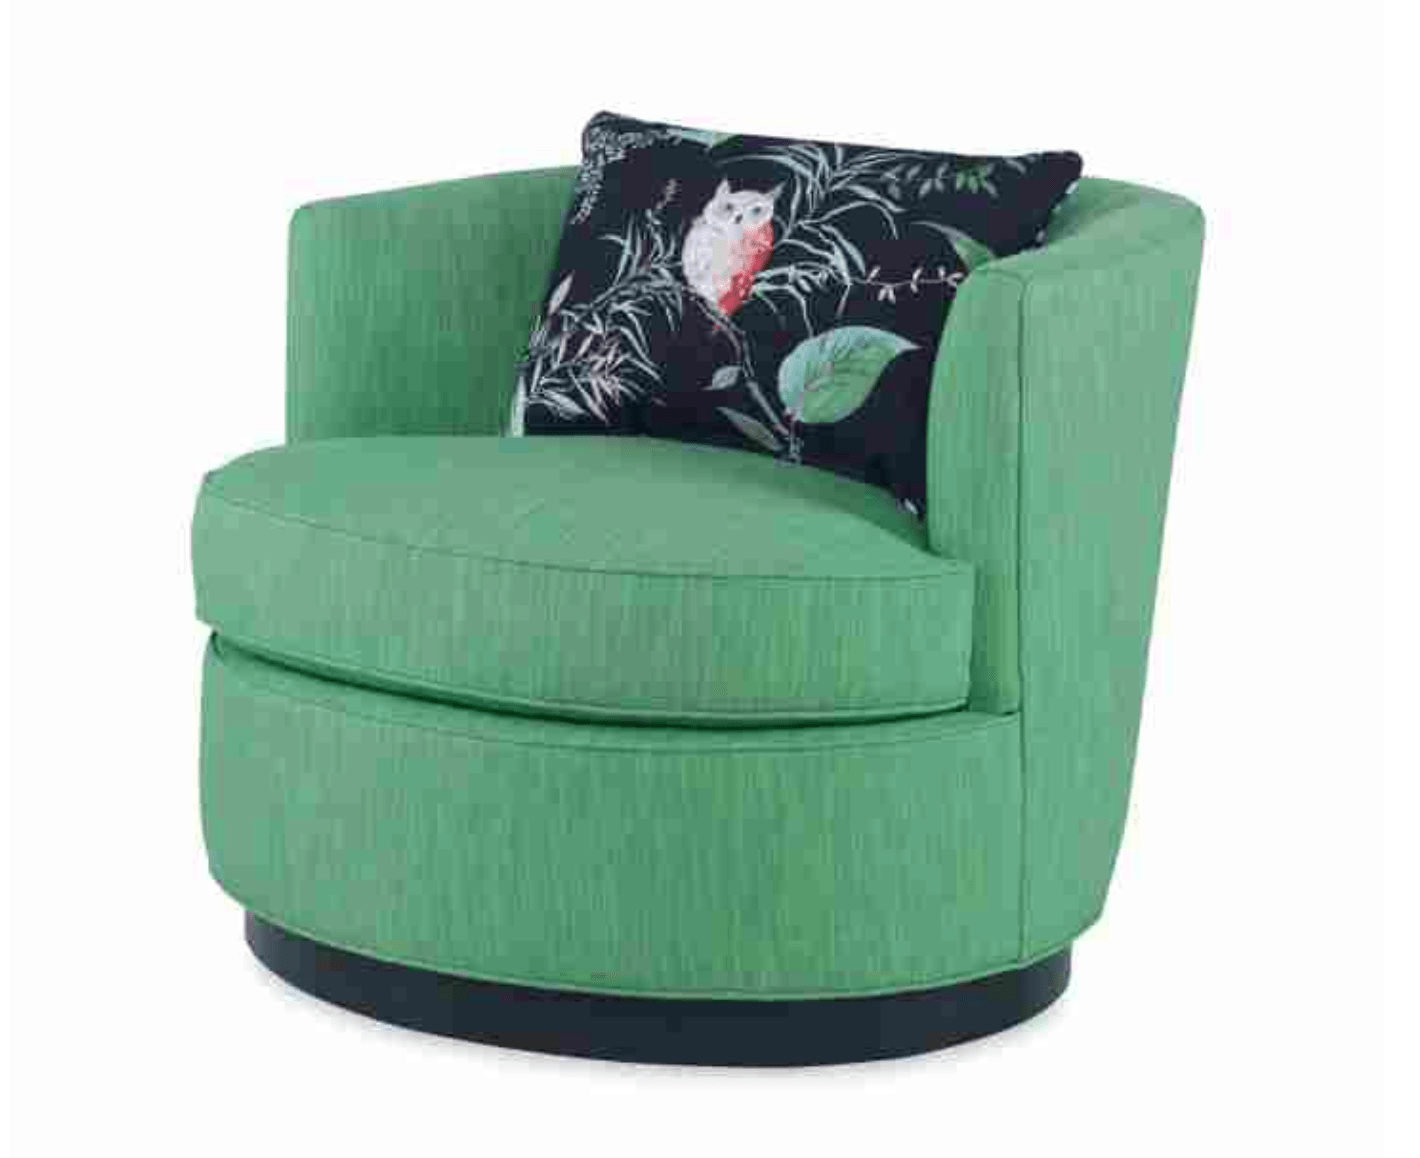 green art deco inspired chair